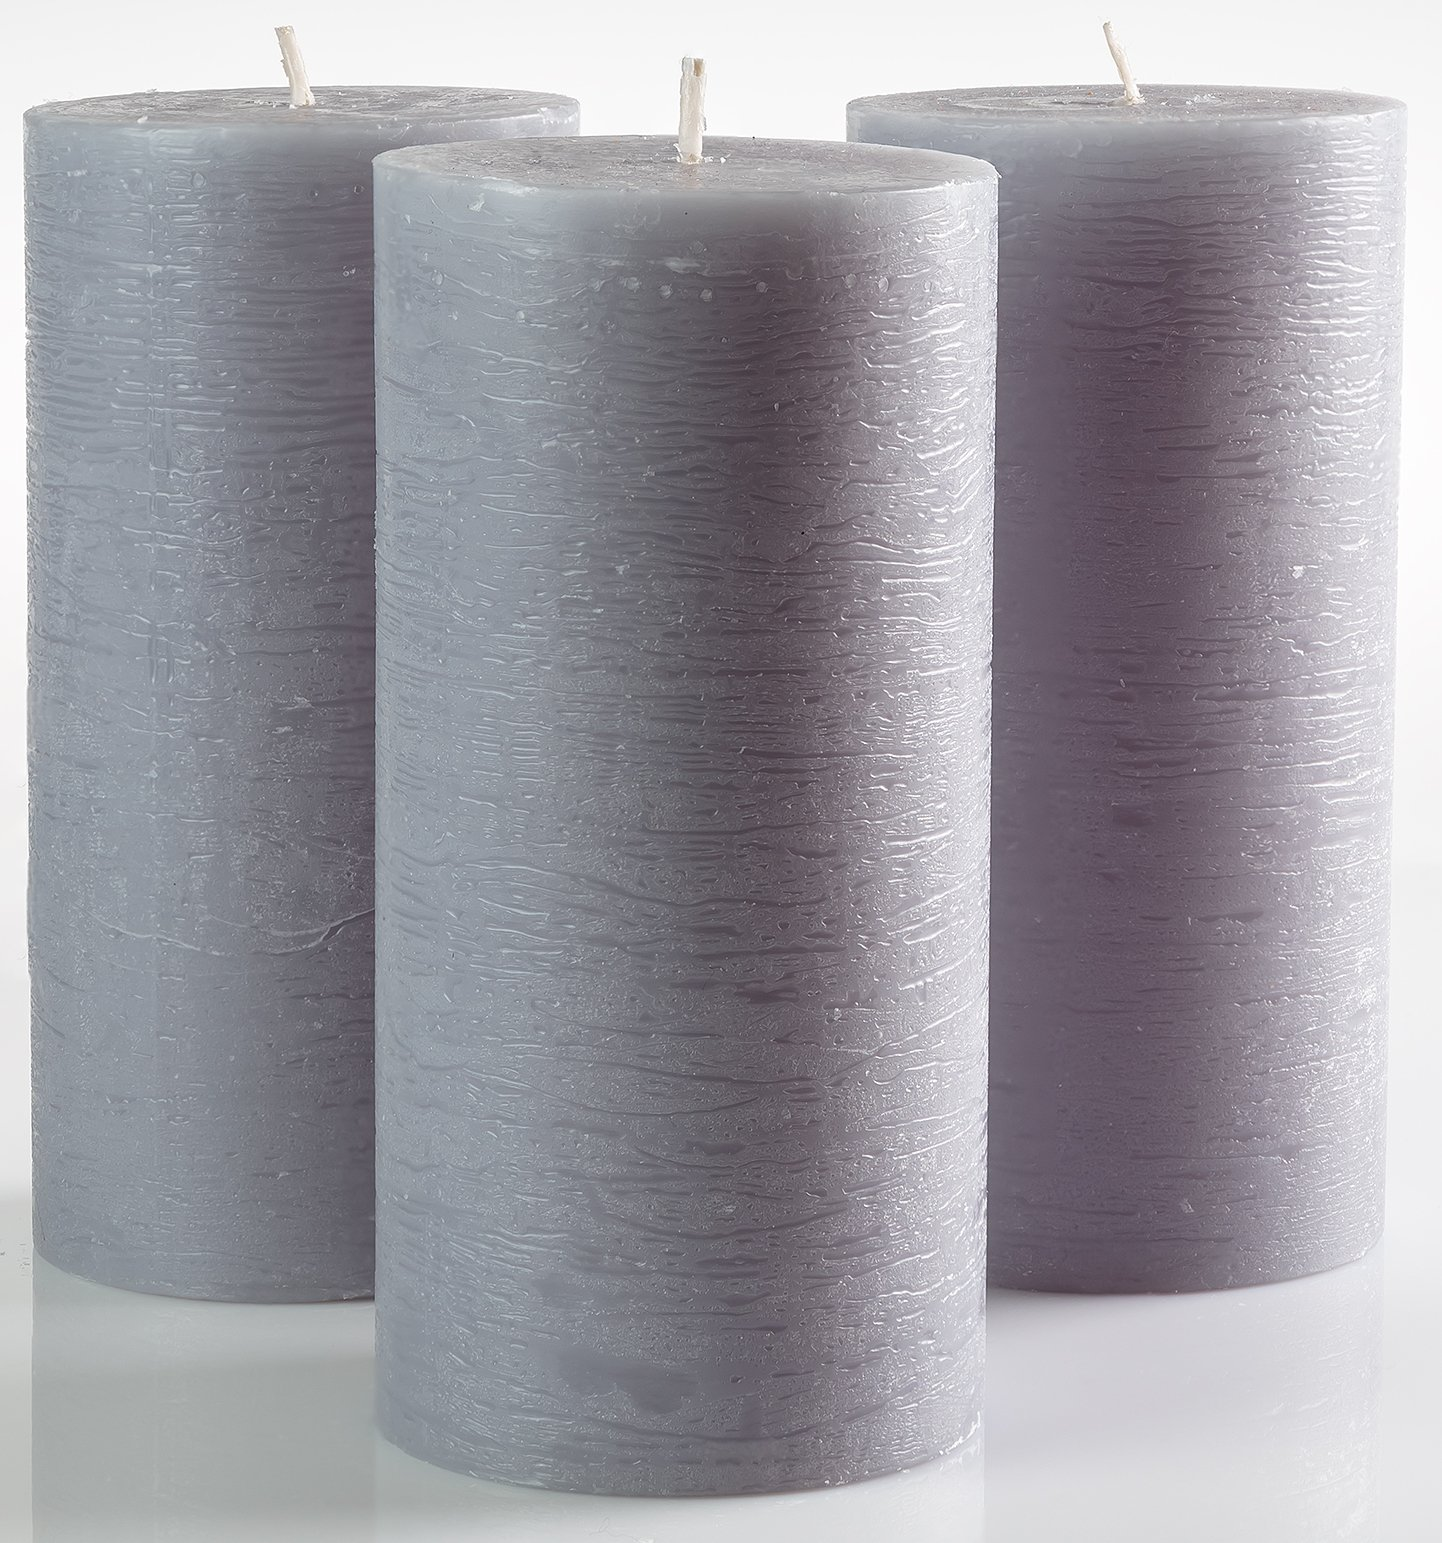 Set of 3 Grey Pillar Candles 7,5 x 15 cm Gray Unscented Dripless for Weddings Home Decoration Relaxation Spa Church by Melt Candle Company